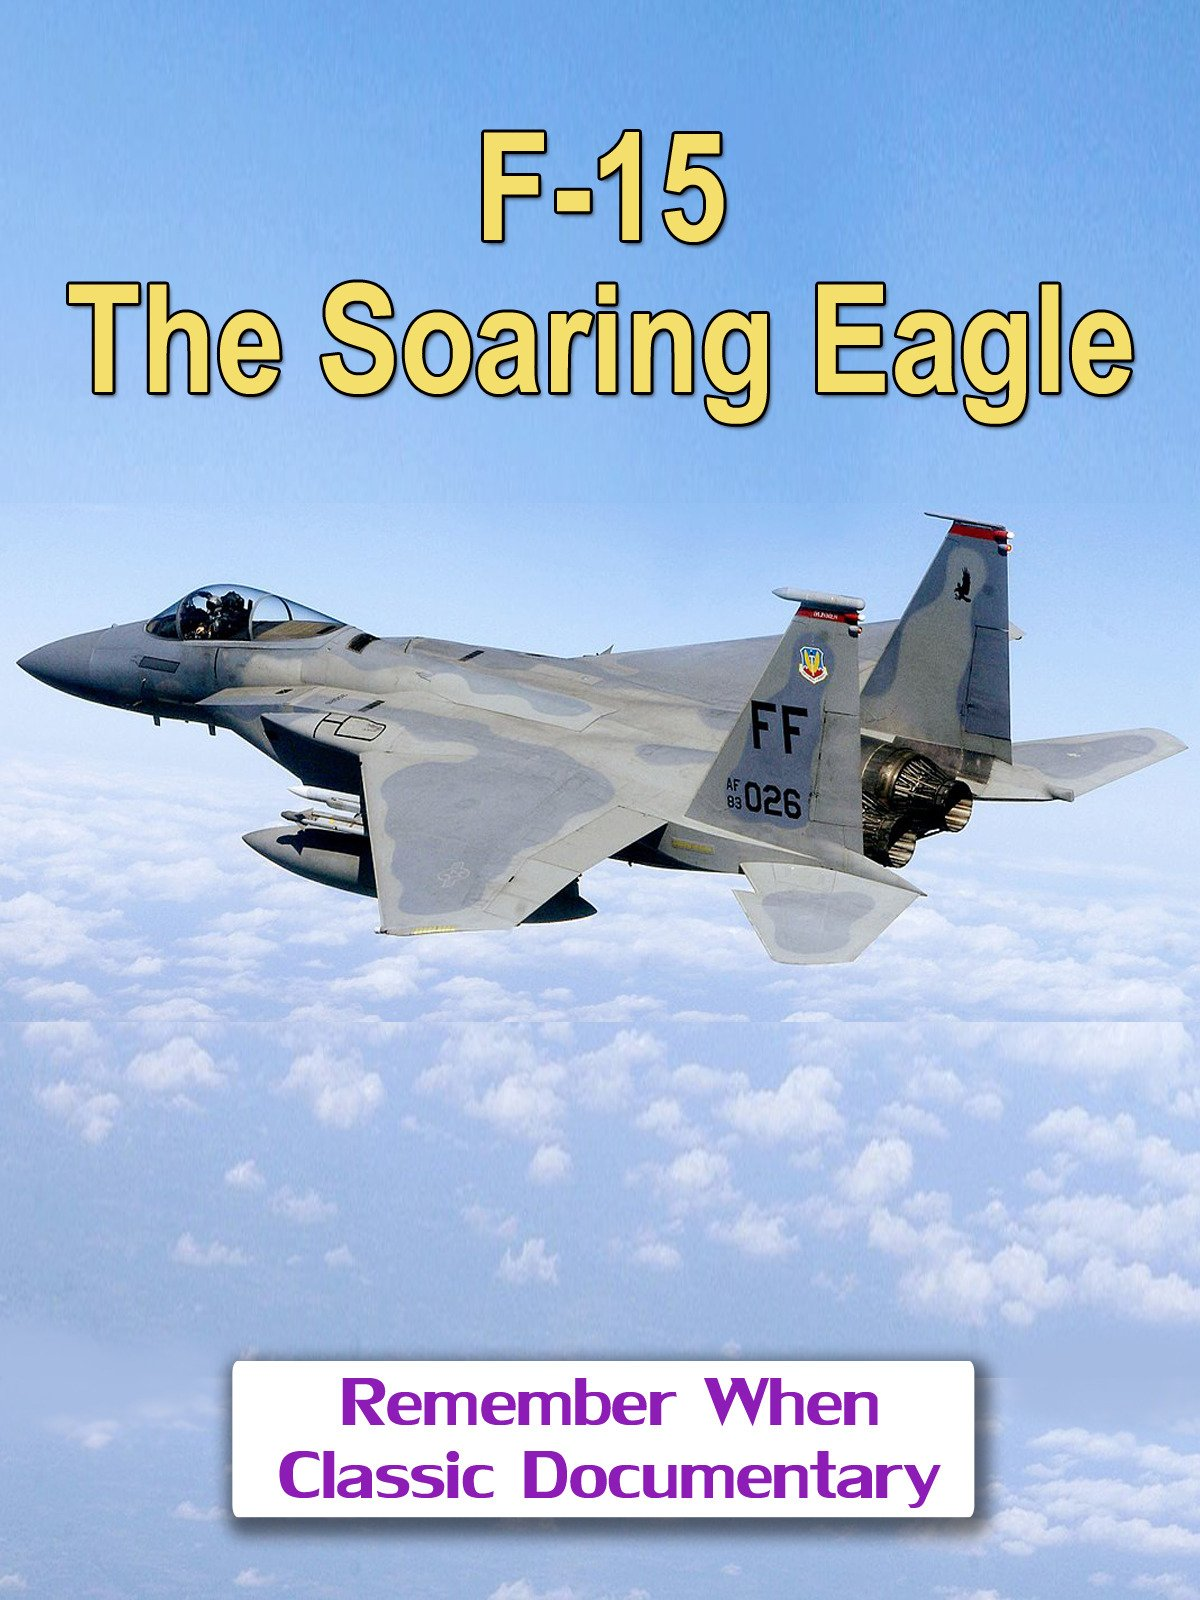 F-15, The Soaring Eagle